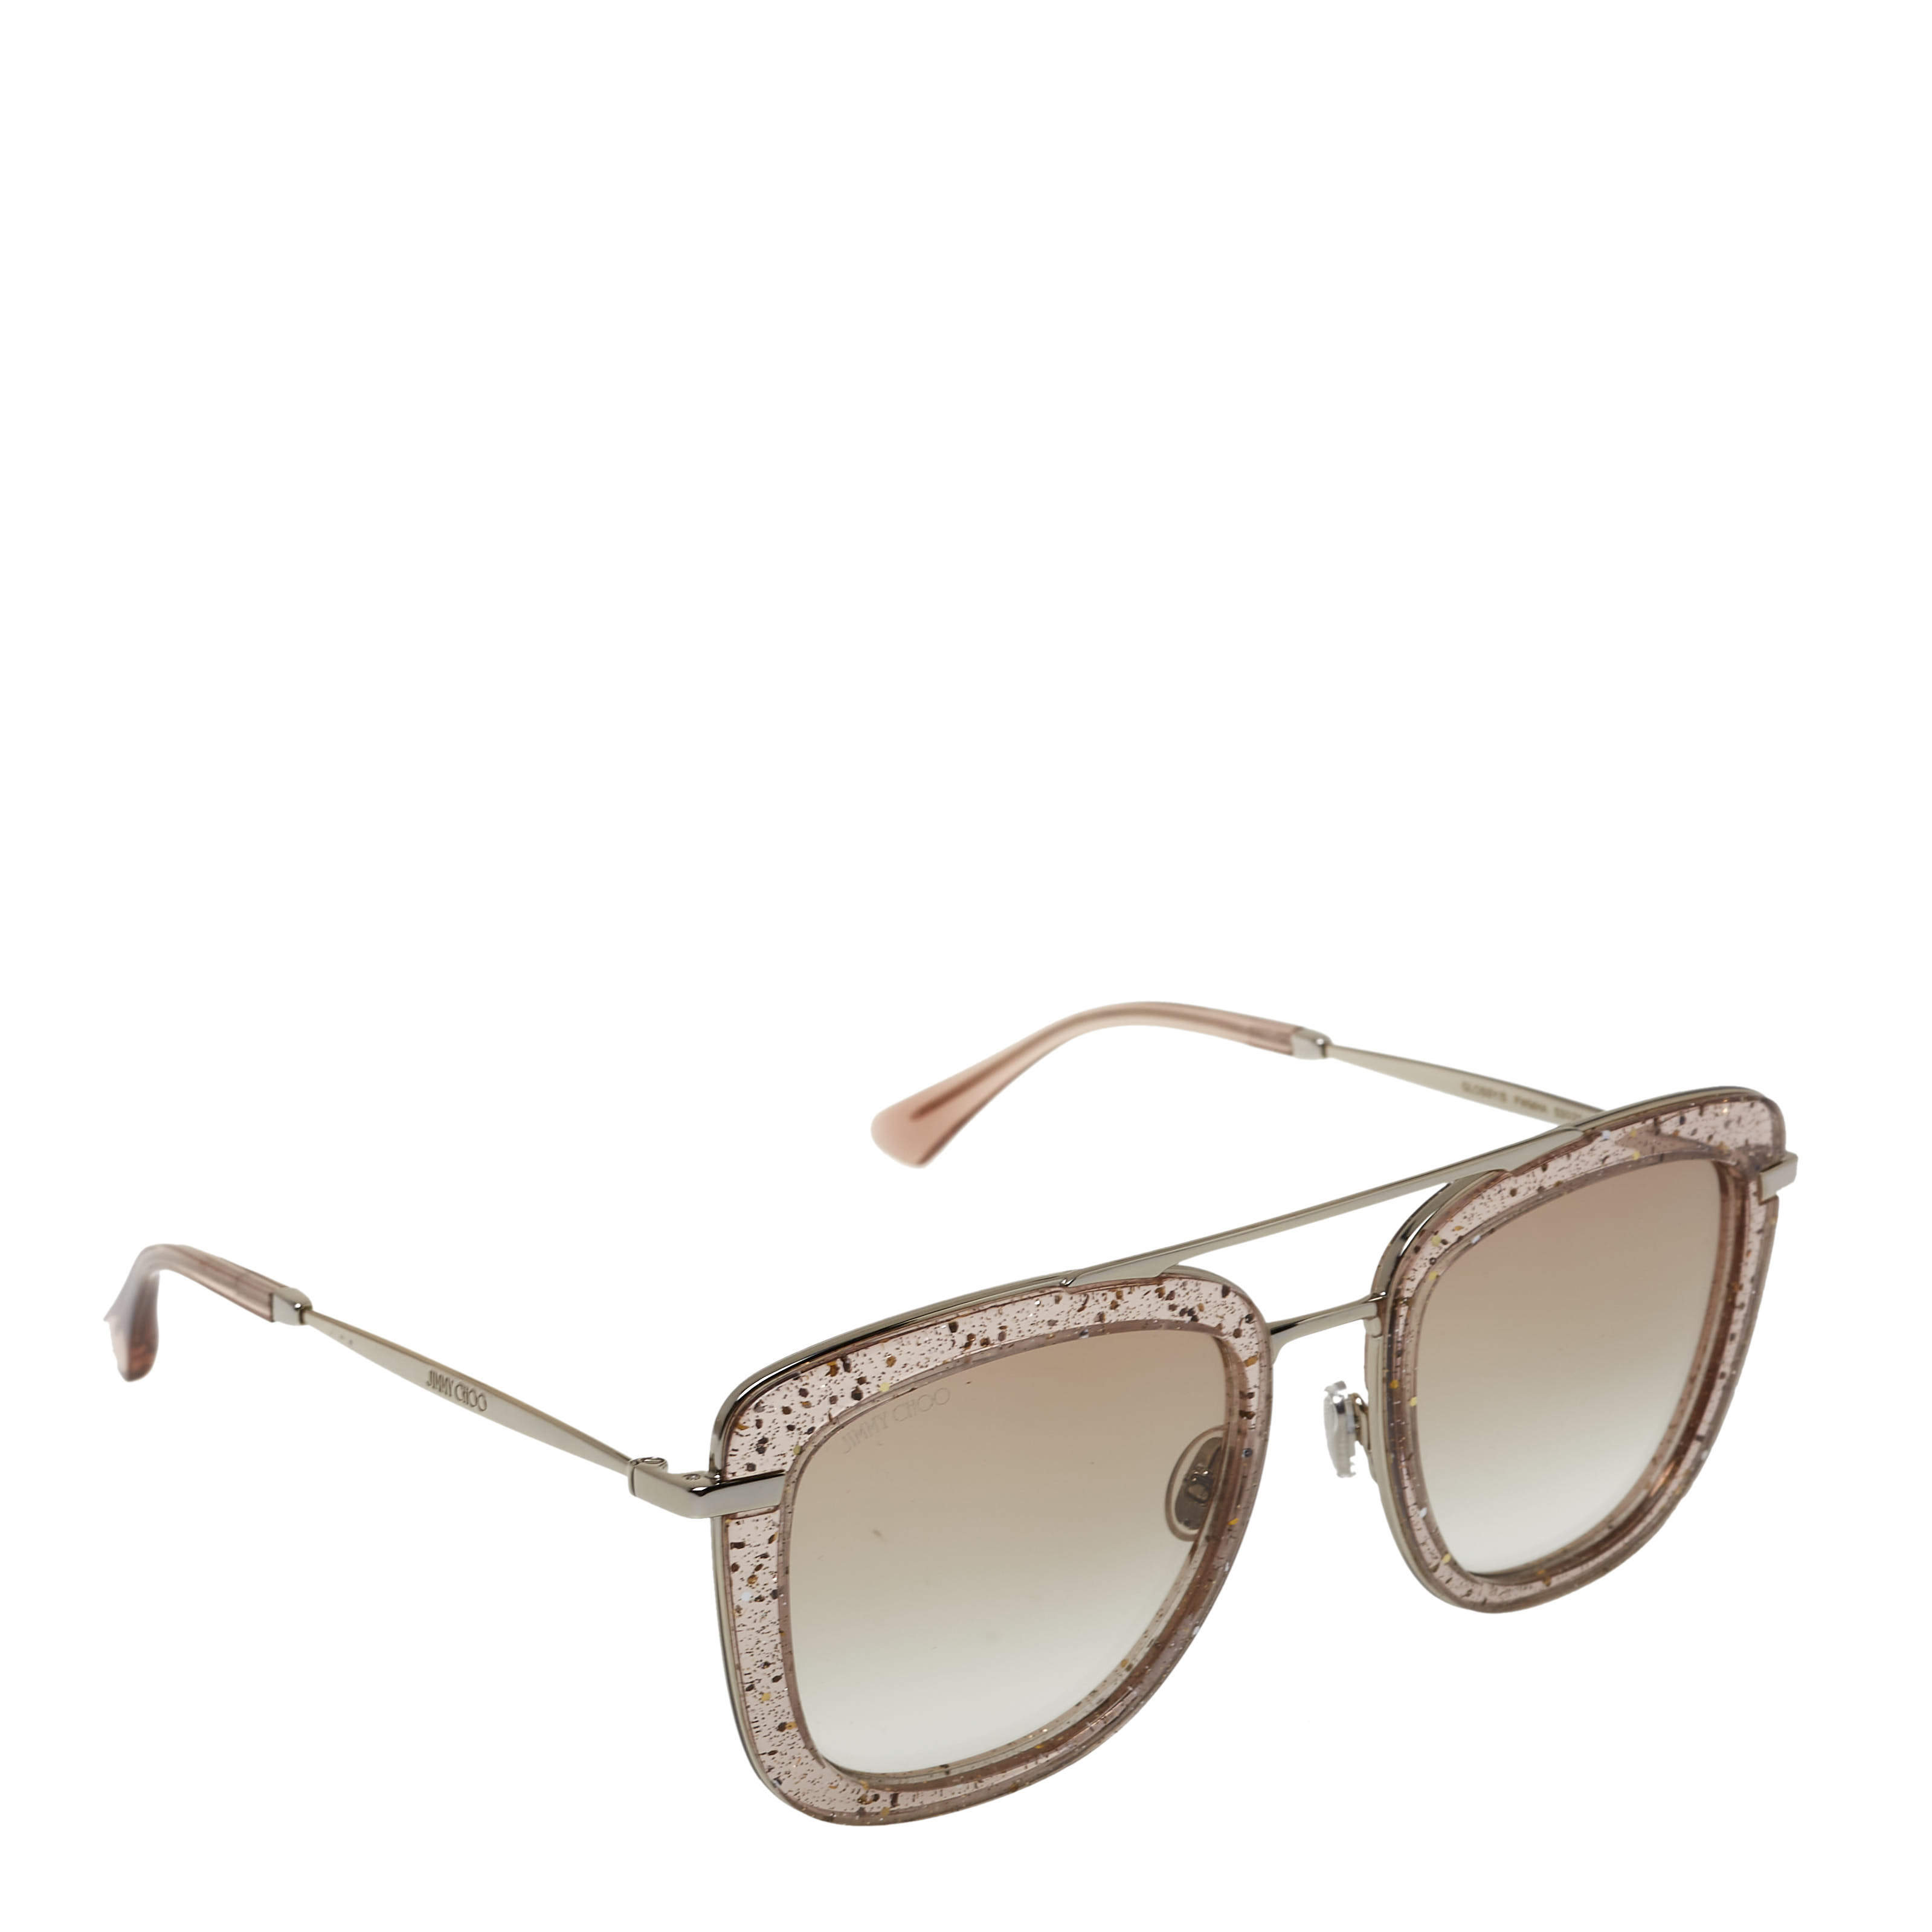 Jimmy Choo Pink/Silver Gradient Glossy/S Square Sunglasses